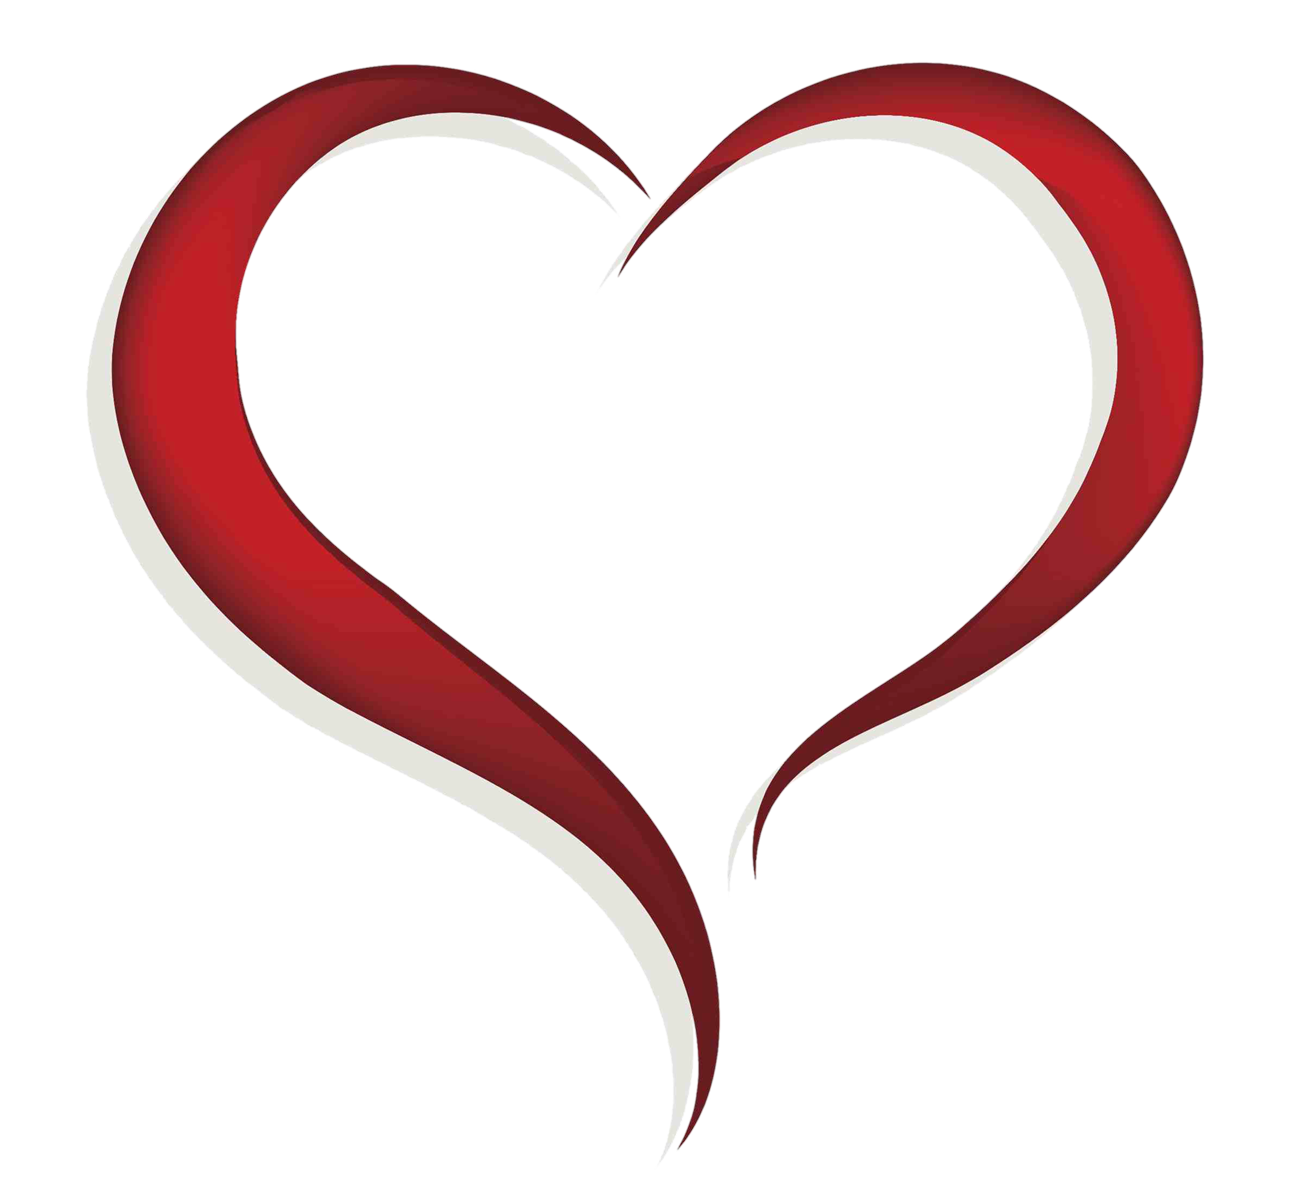 Hearts clipart dagger. Free heart outline download